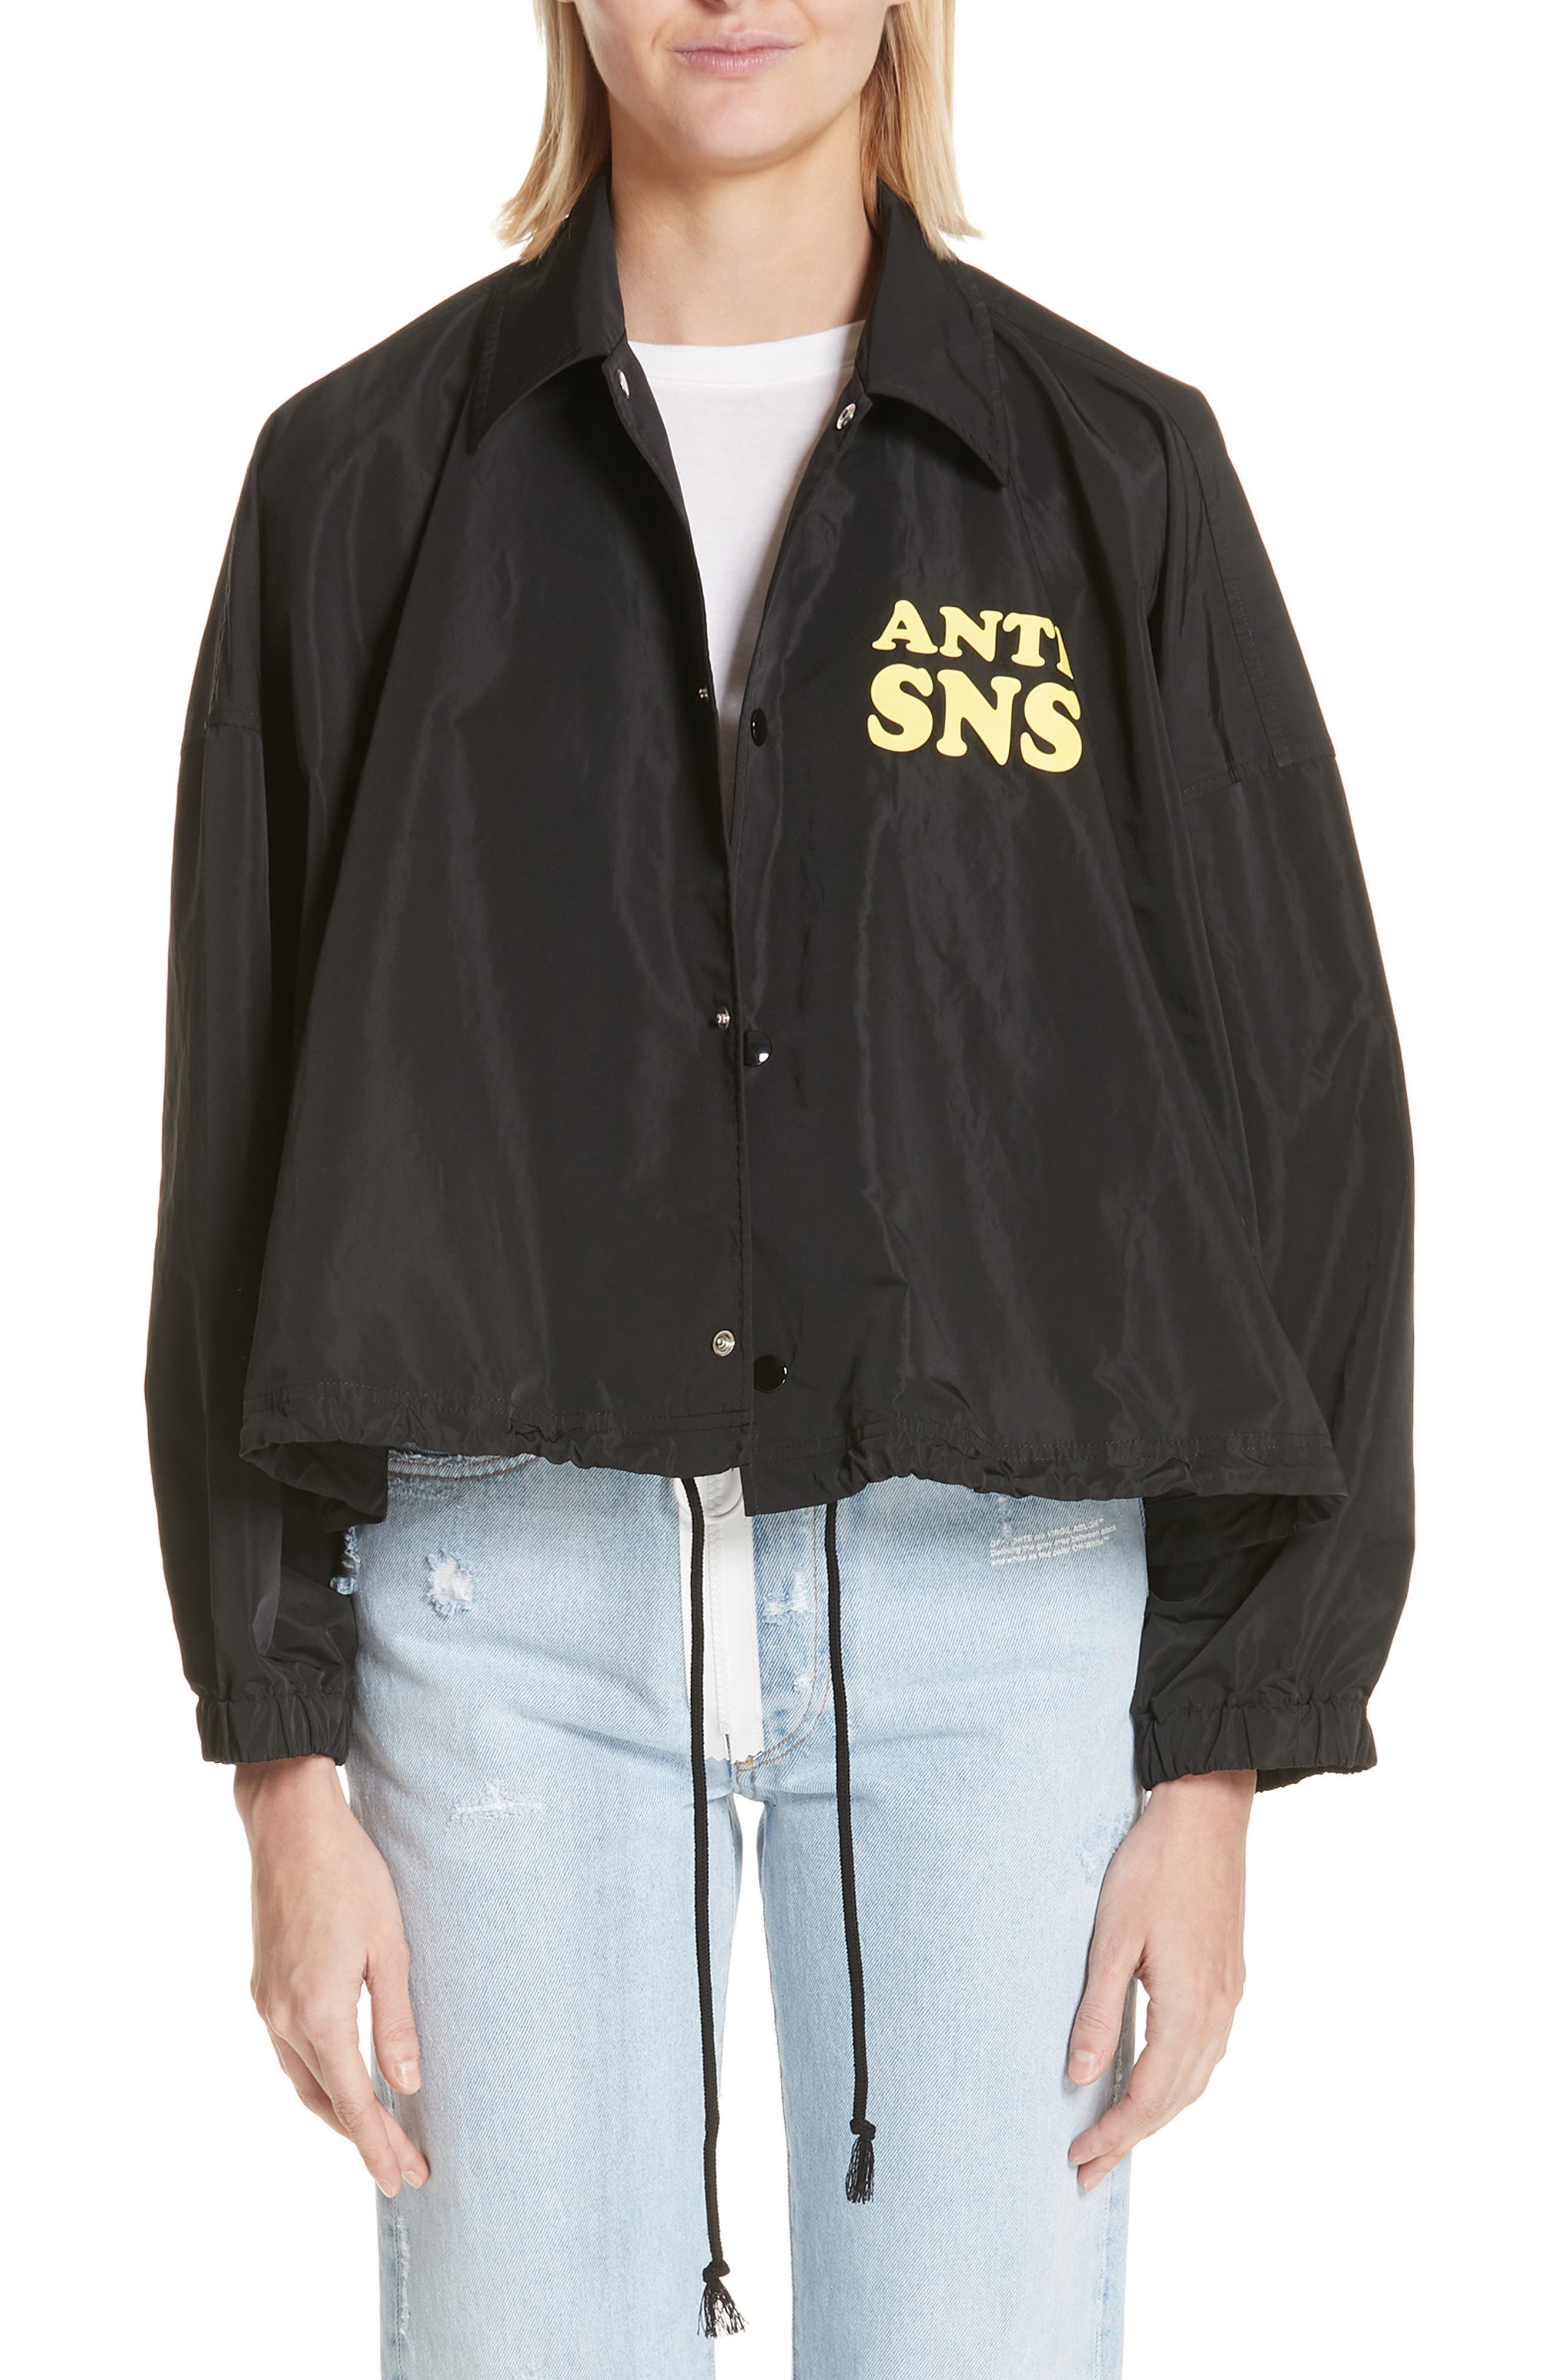 Undercover Anti SNS Jacket